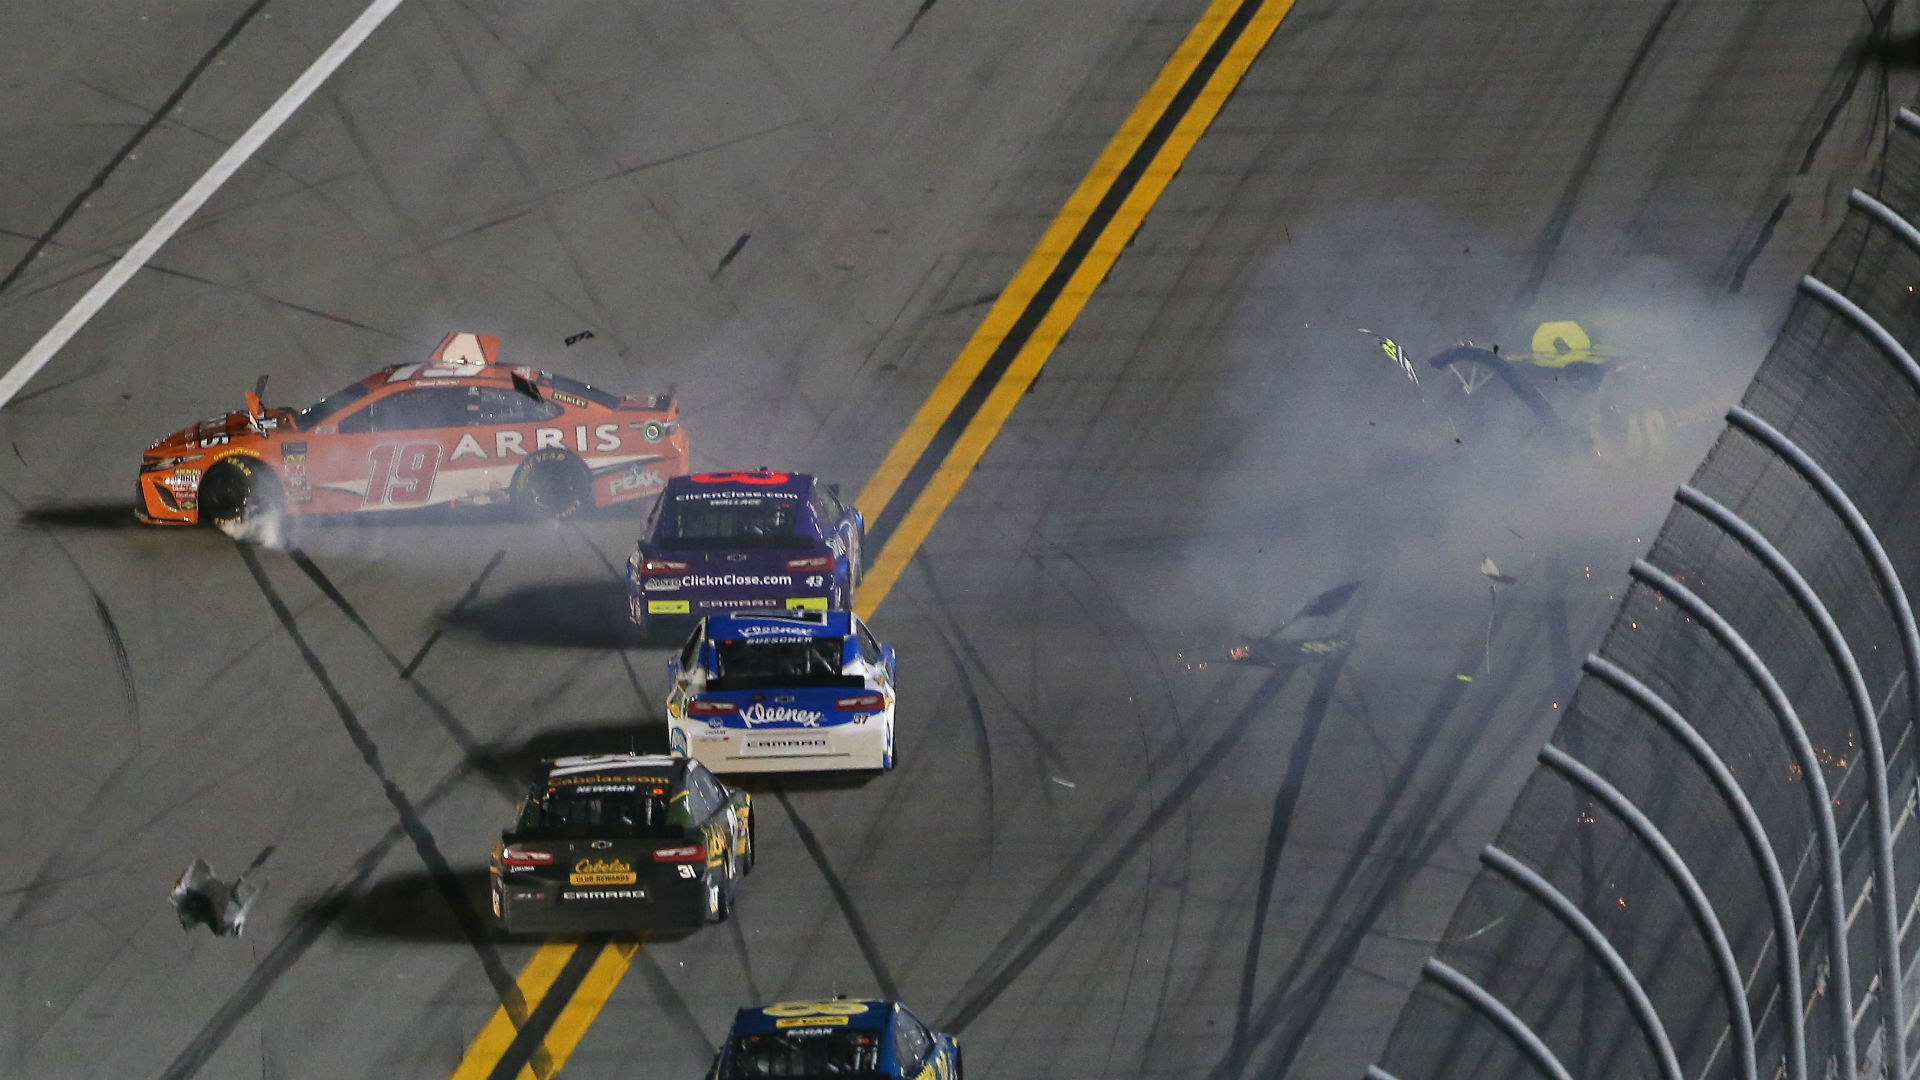 Watch: Jimmie Johnson's car totaled in Can-Am Duel wreck at Daytona